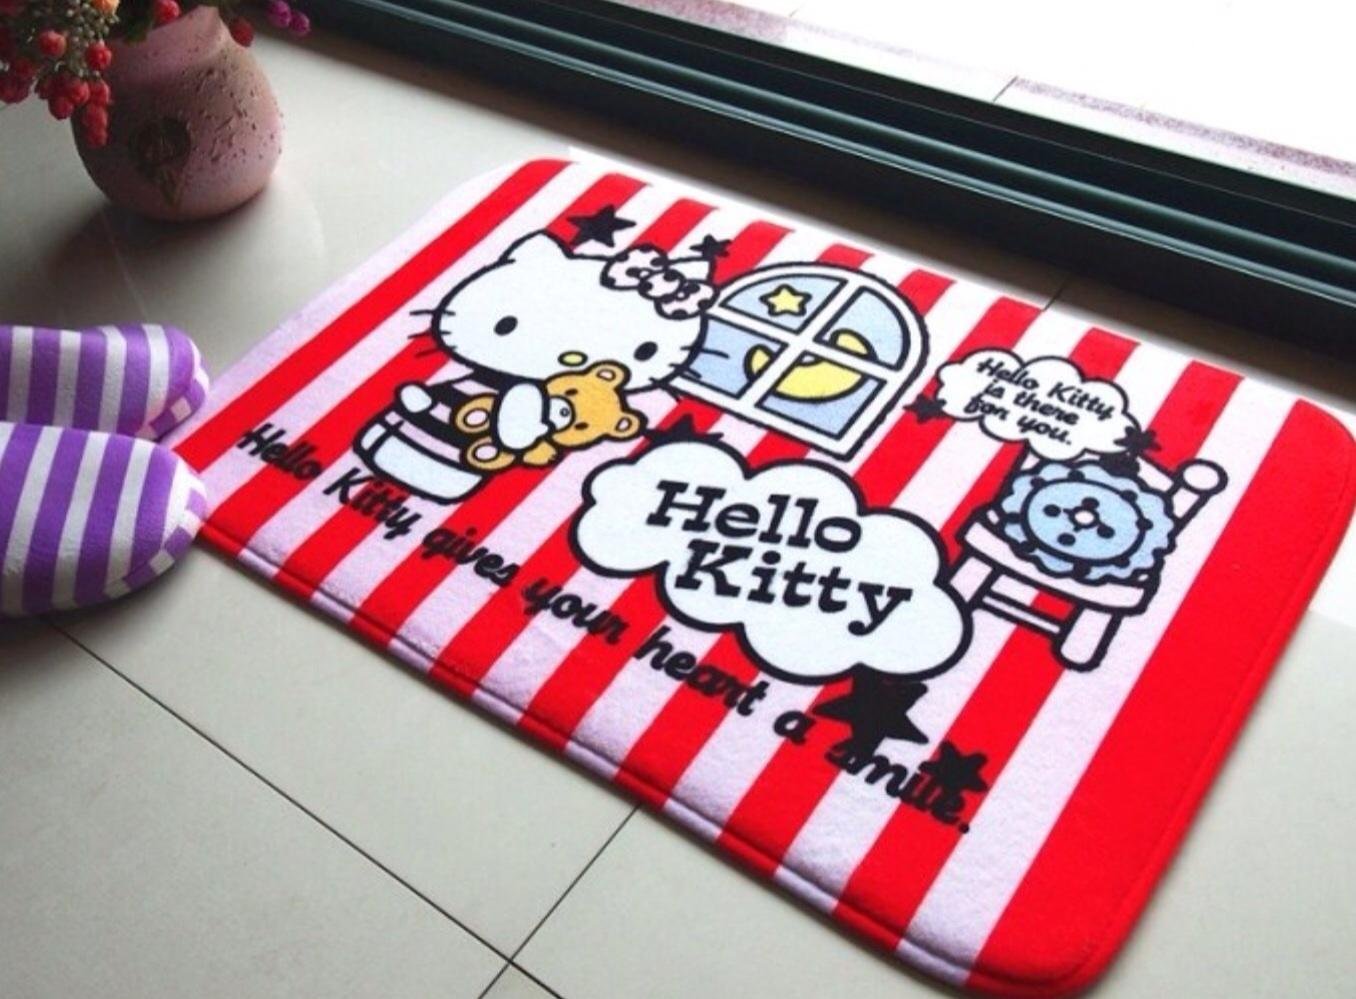 hello-kitty-floor-mat-carpet-aplusmarketing-1411-23-aplusmarketing@14